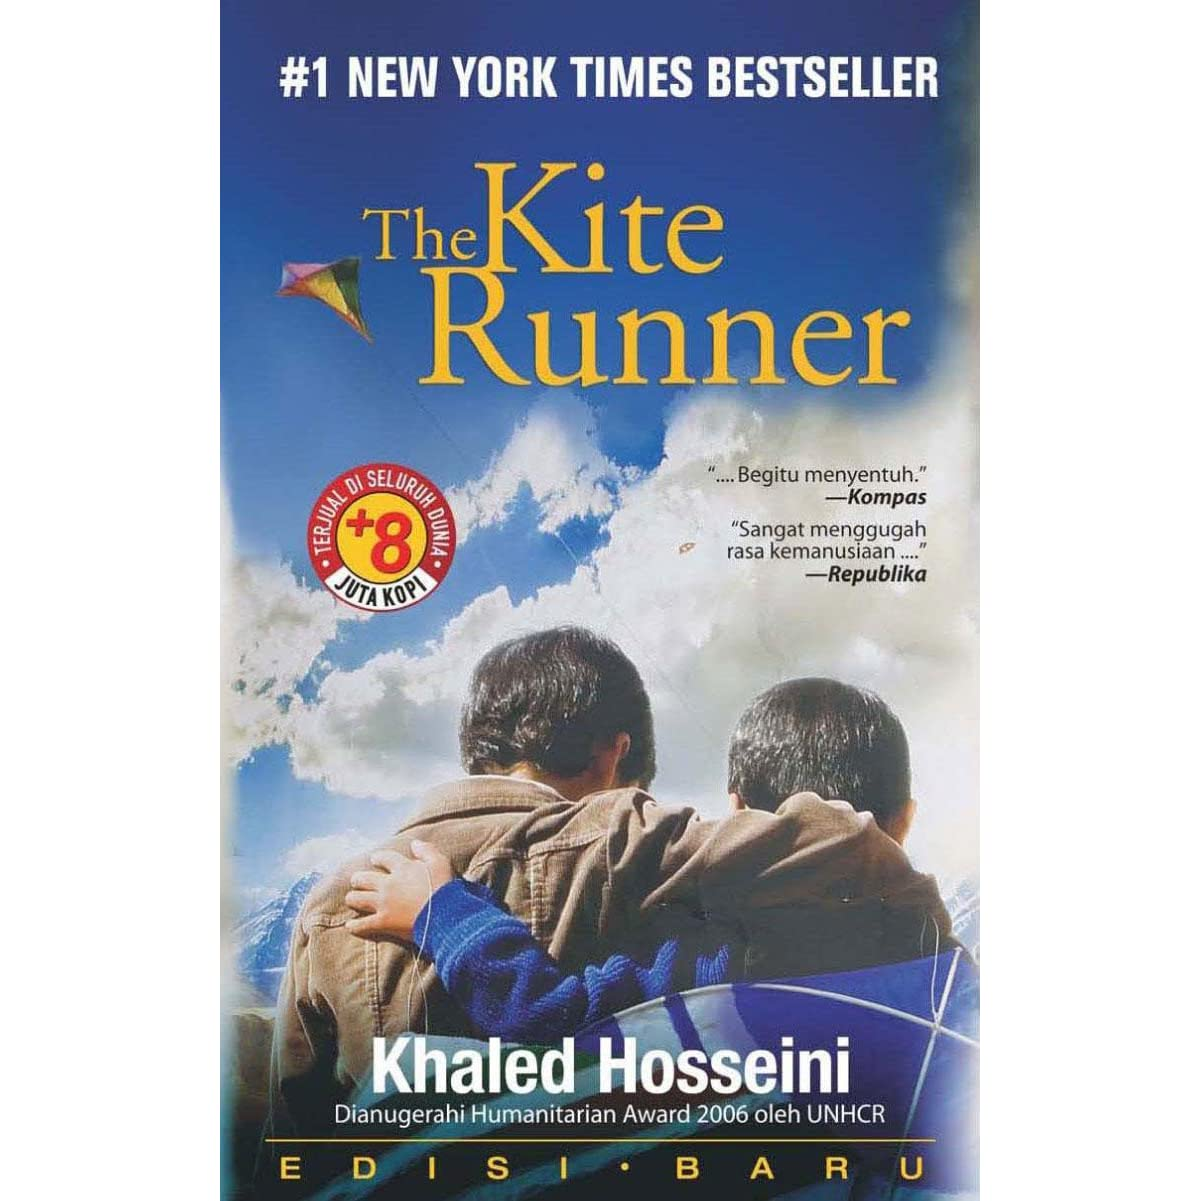 khaled hossieni s the kite runner change Khaled hosseini published the kite runner in 2003 by the end of 2005, it was a bestseller in the united states it seemed readers couldn't get enough hosseini's story about the troubled friendship between two afghan boys in 2007, marc forster directed a film adaptation of the novel.